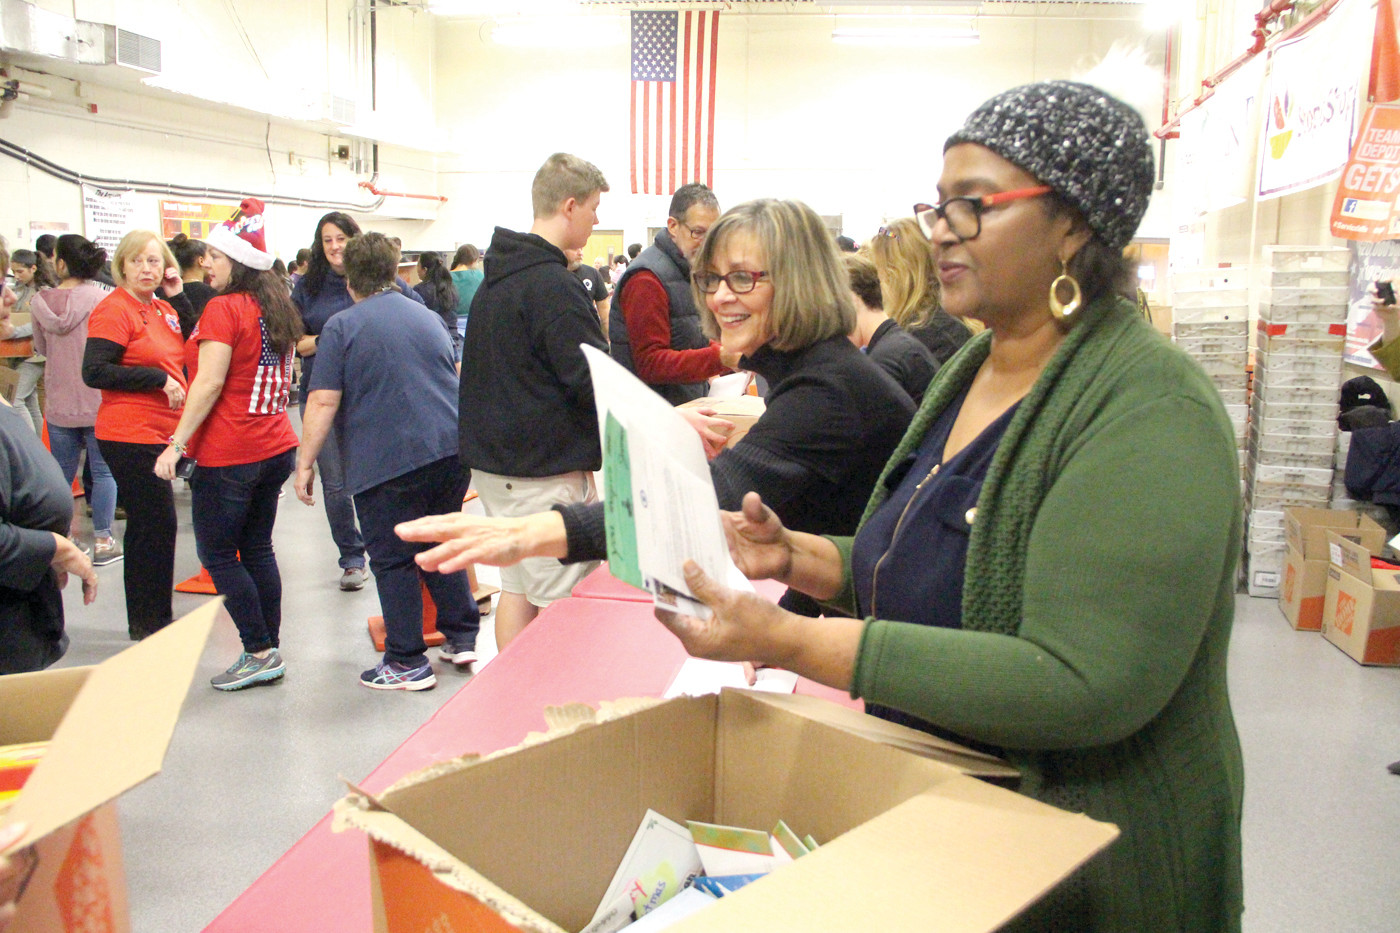 LETTERS FROM HOME: Paulette Hamilton and Rosa DeCastillo, both from the Lt. Governor's office, were the last stop on the assembly line. They made sure each box contained letters written by school children.